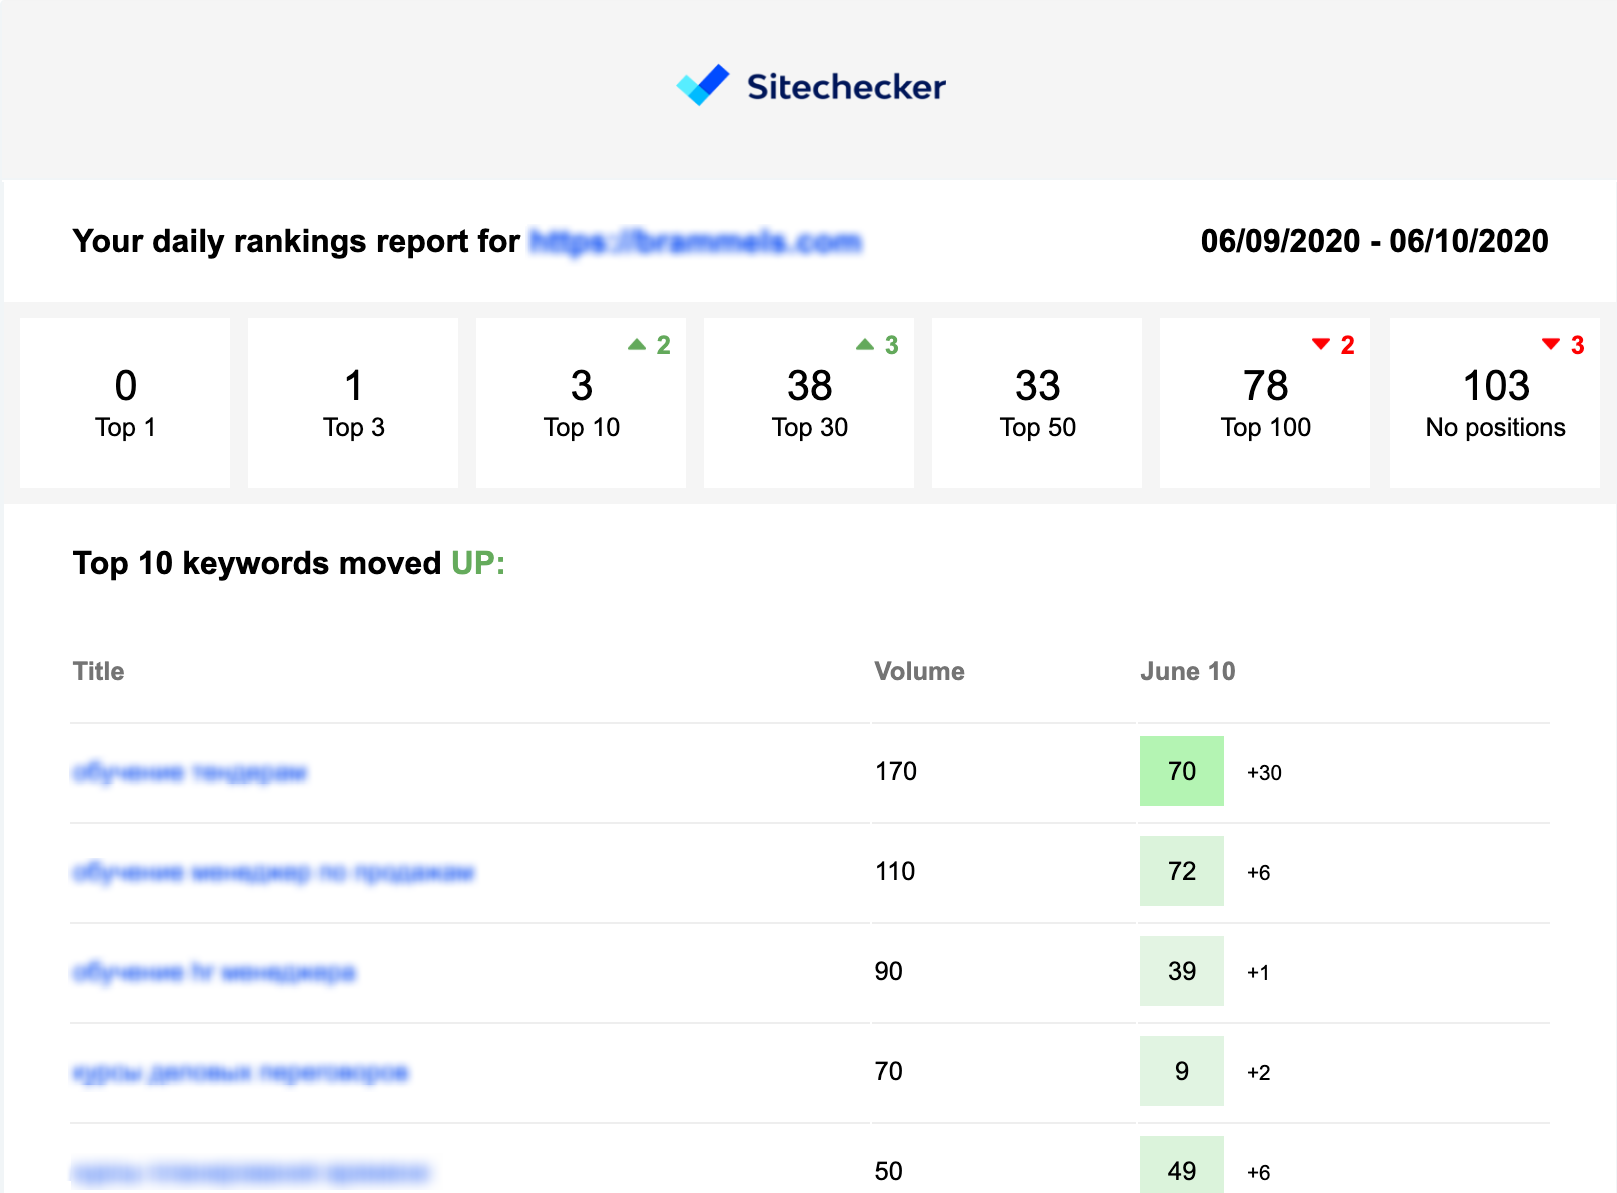 sitechecker daily rankings report